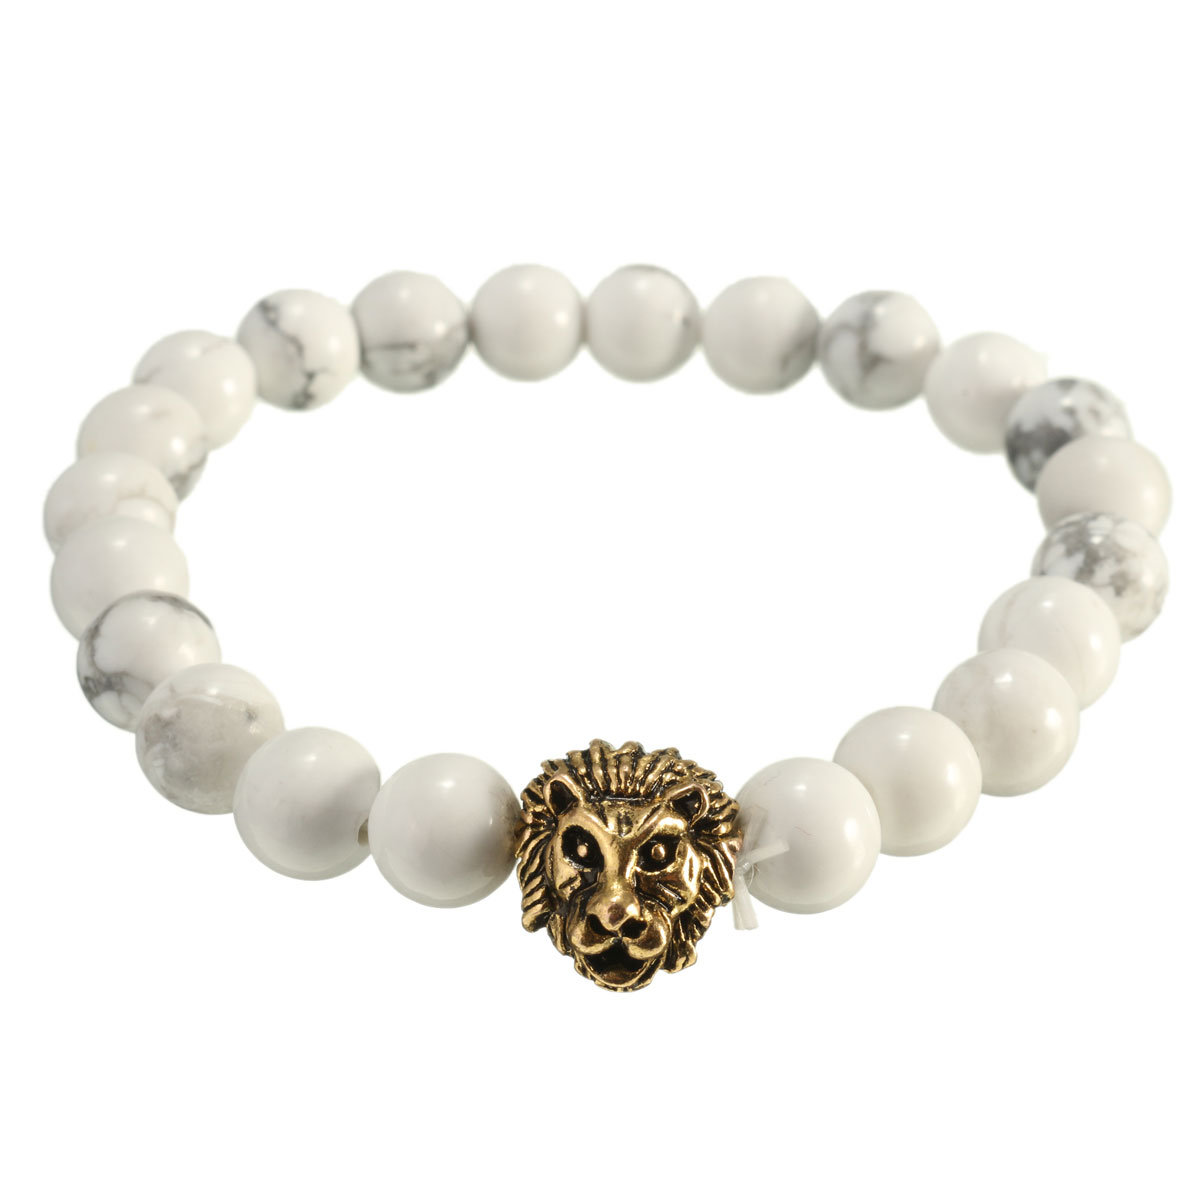 White Turquoise Lion Head Beaded Stretch Bracelet